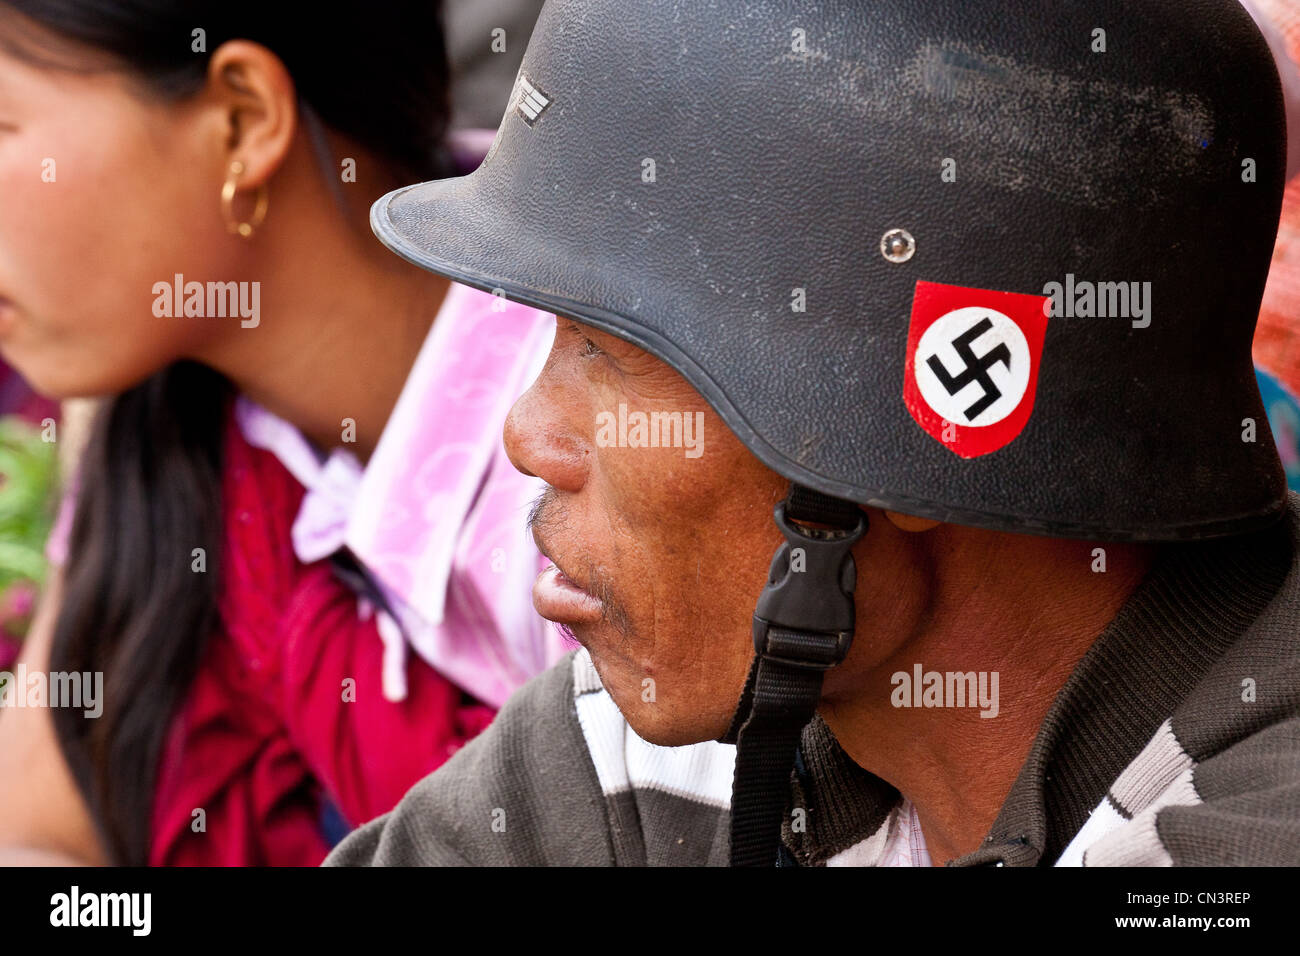 Myanmar (Burma), Shan state, Aungban, man with a motorcycle helmet Stock Photo